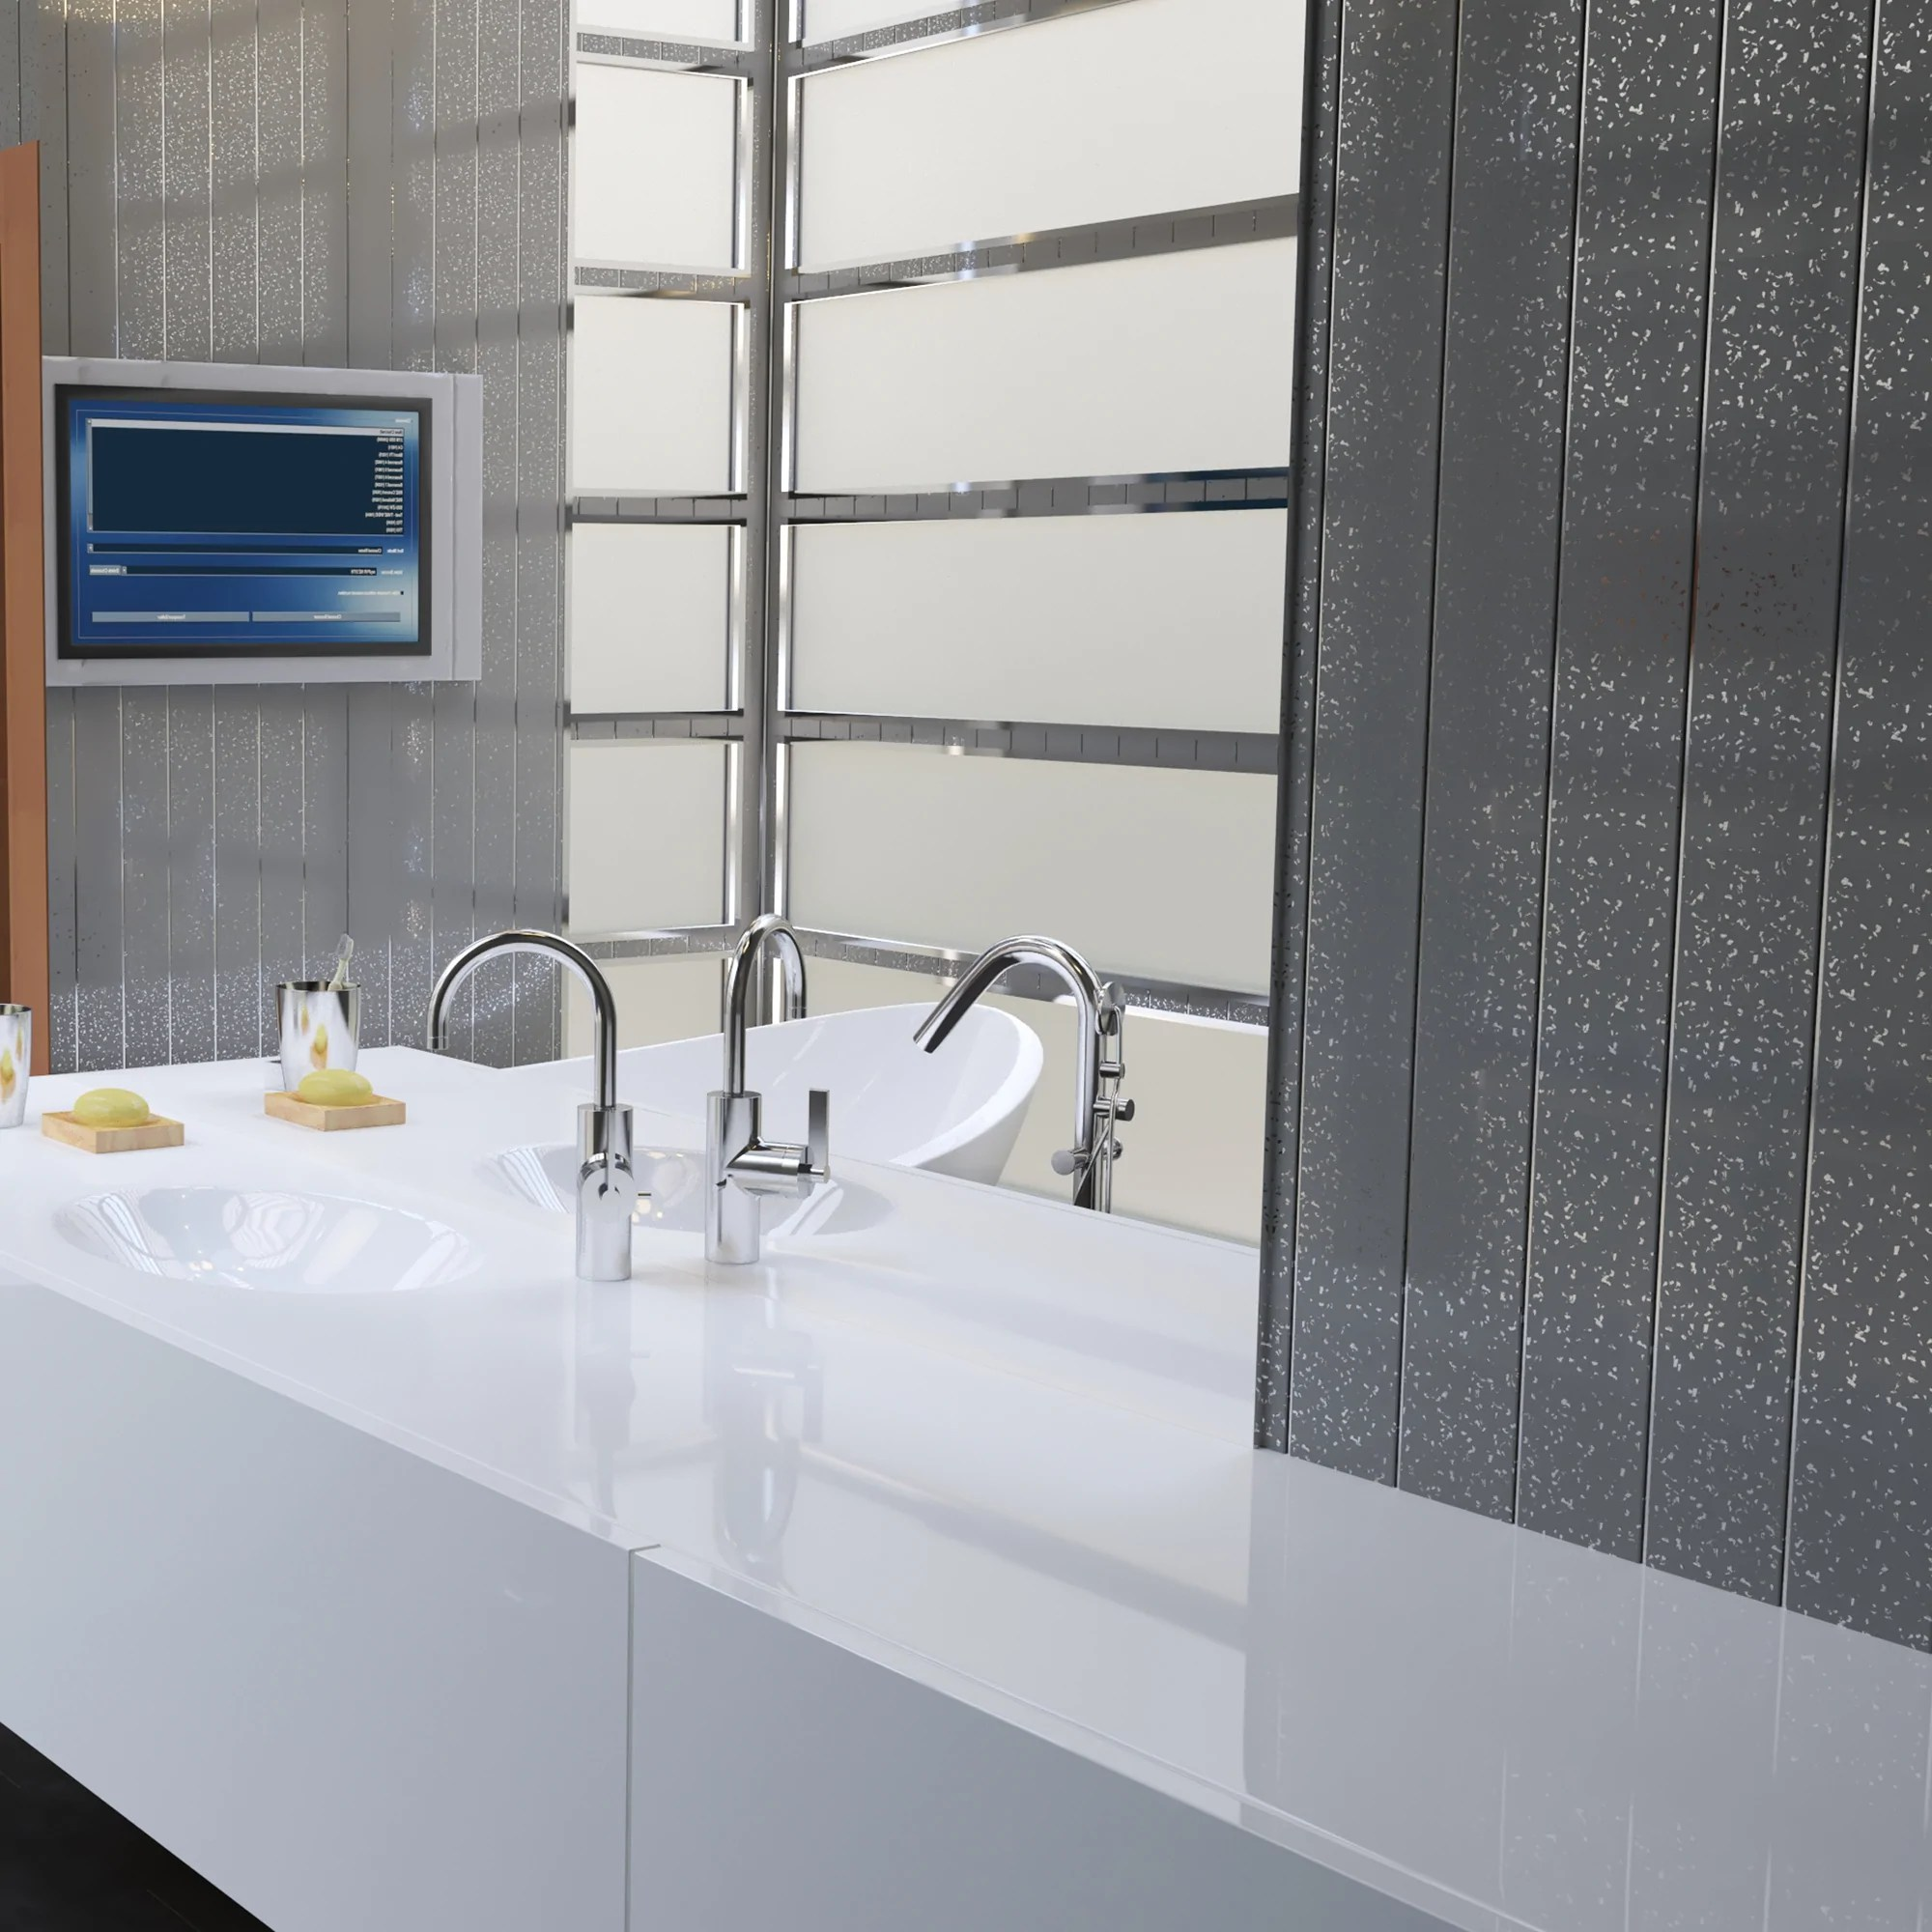 Grey Sparkle Chrome Bathroom Wall Panels Pvc 5mm Thick Cladding Claddtech